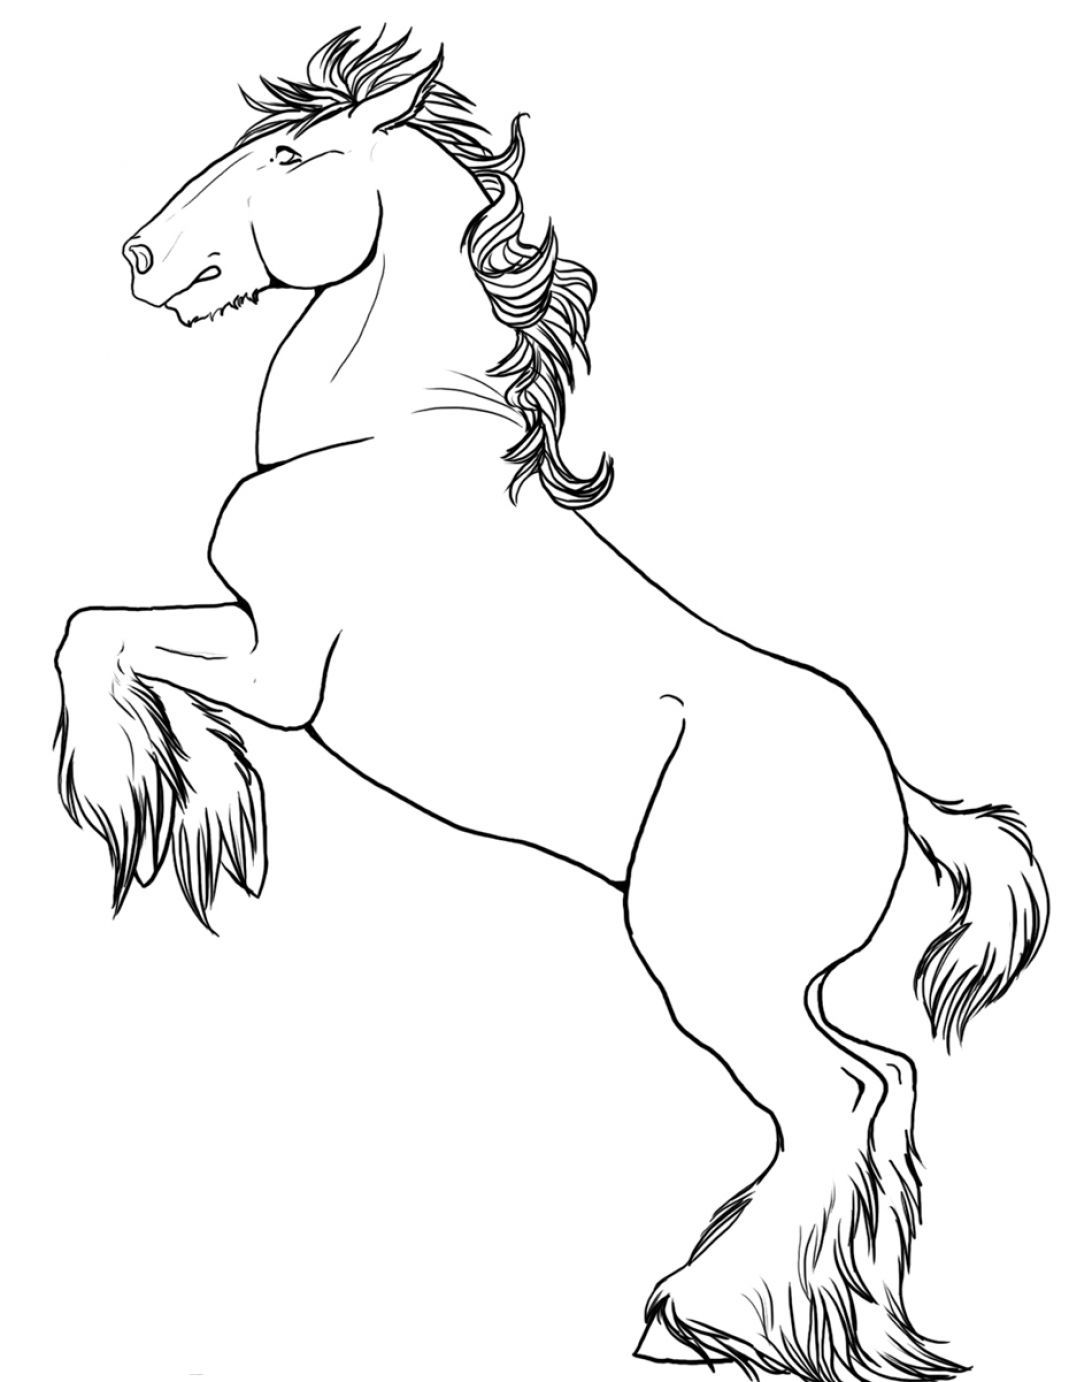 How to draw a horse rearing pictures | Free Coloring Pages ...